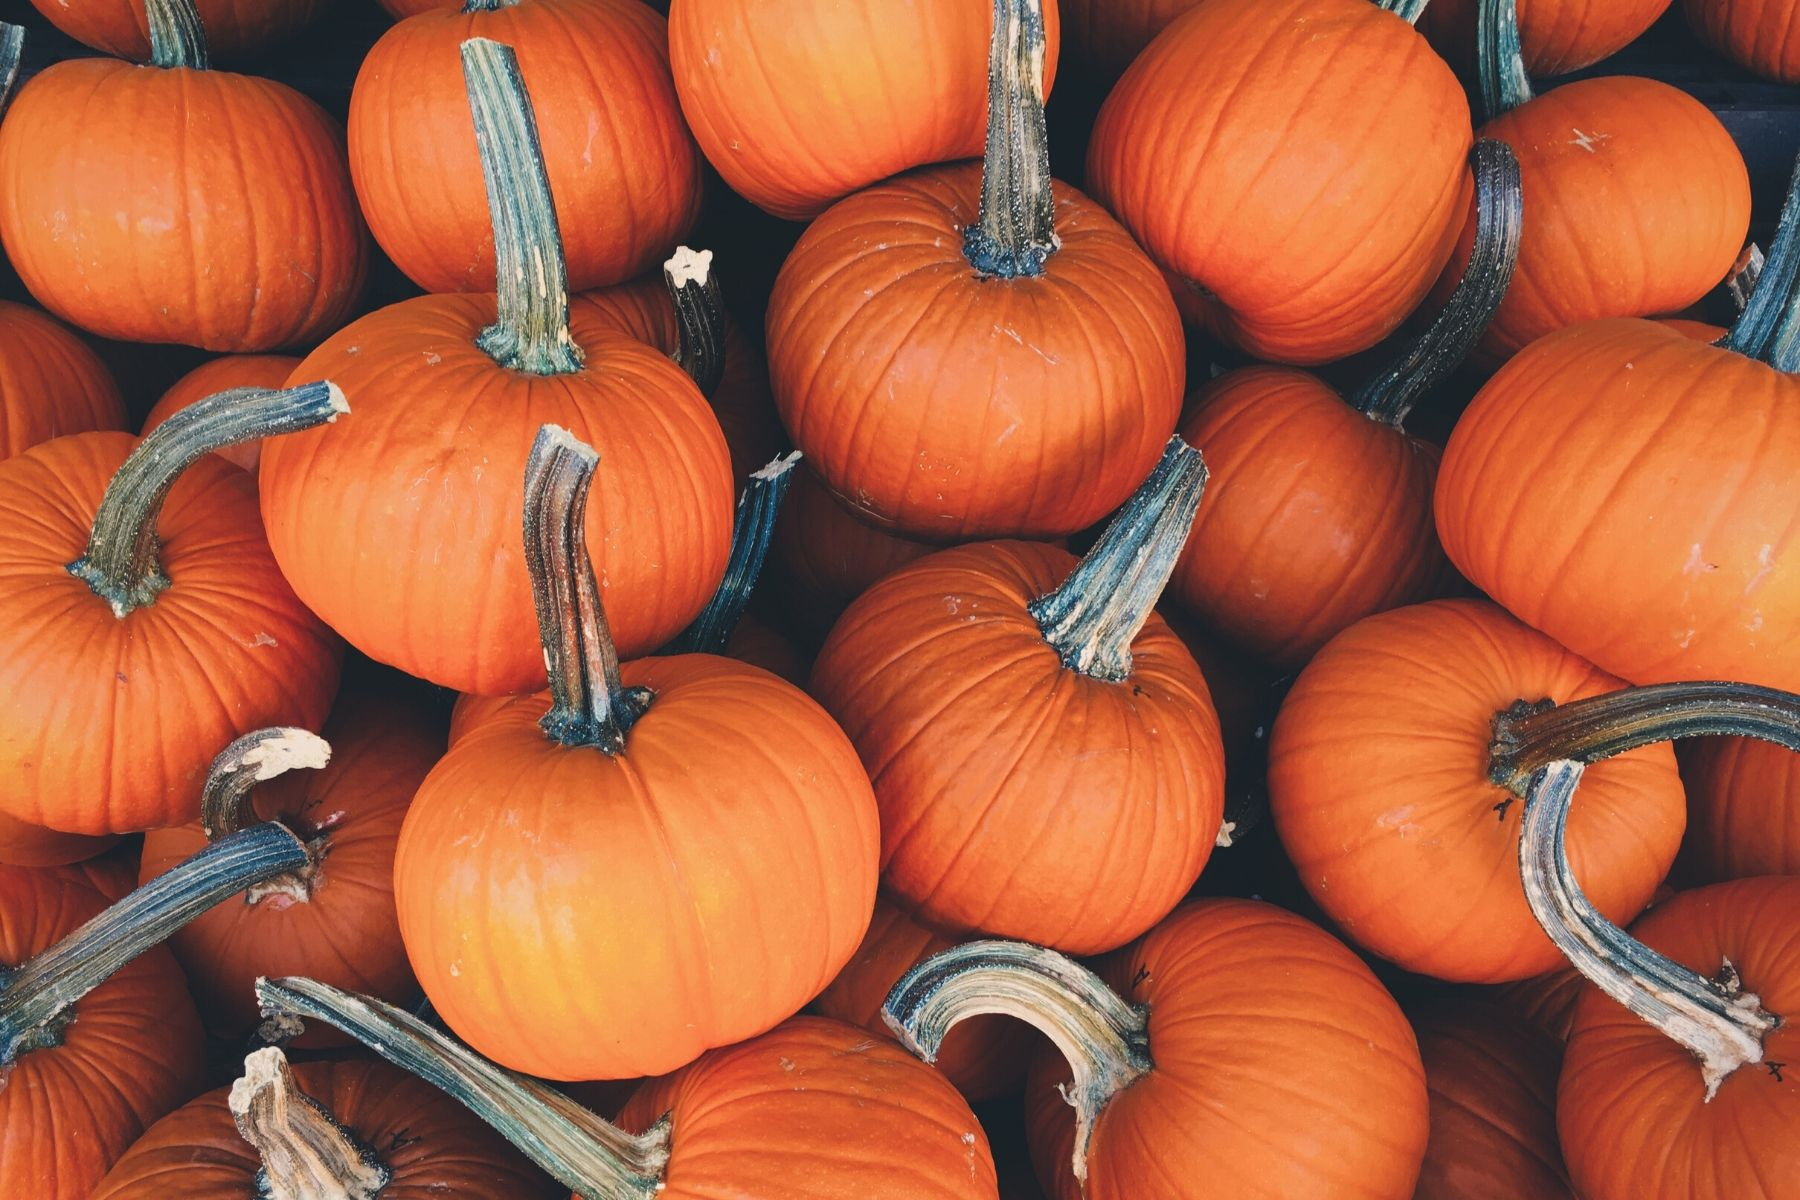 Four Ways to Get the Most from Pumpkins This Halloween